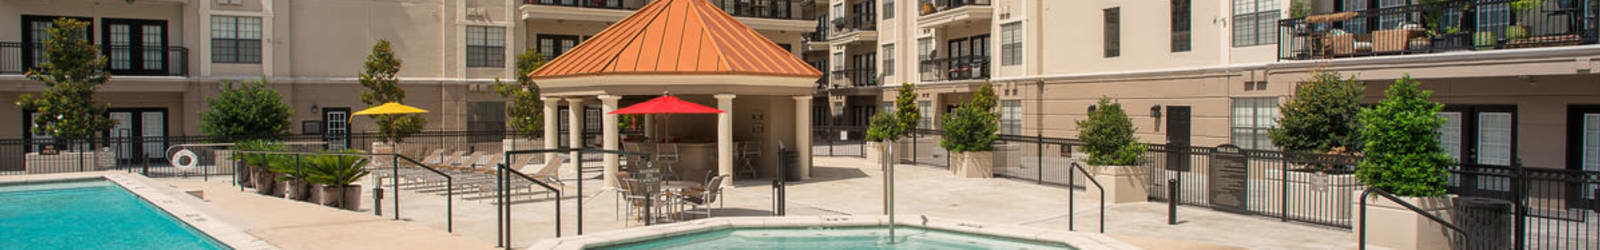 Pet friendly at Chateau de Ville in Farmers Branch, Texas